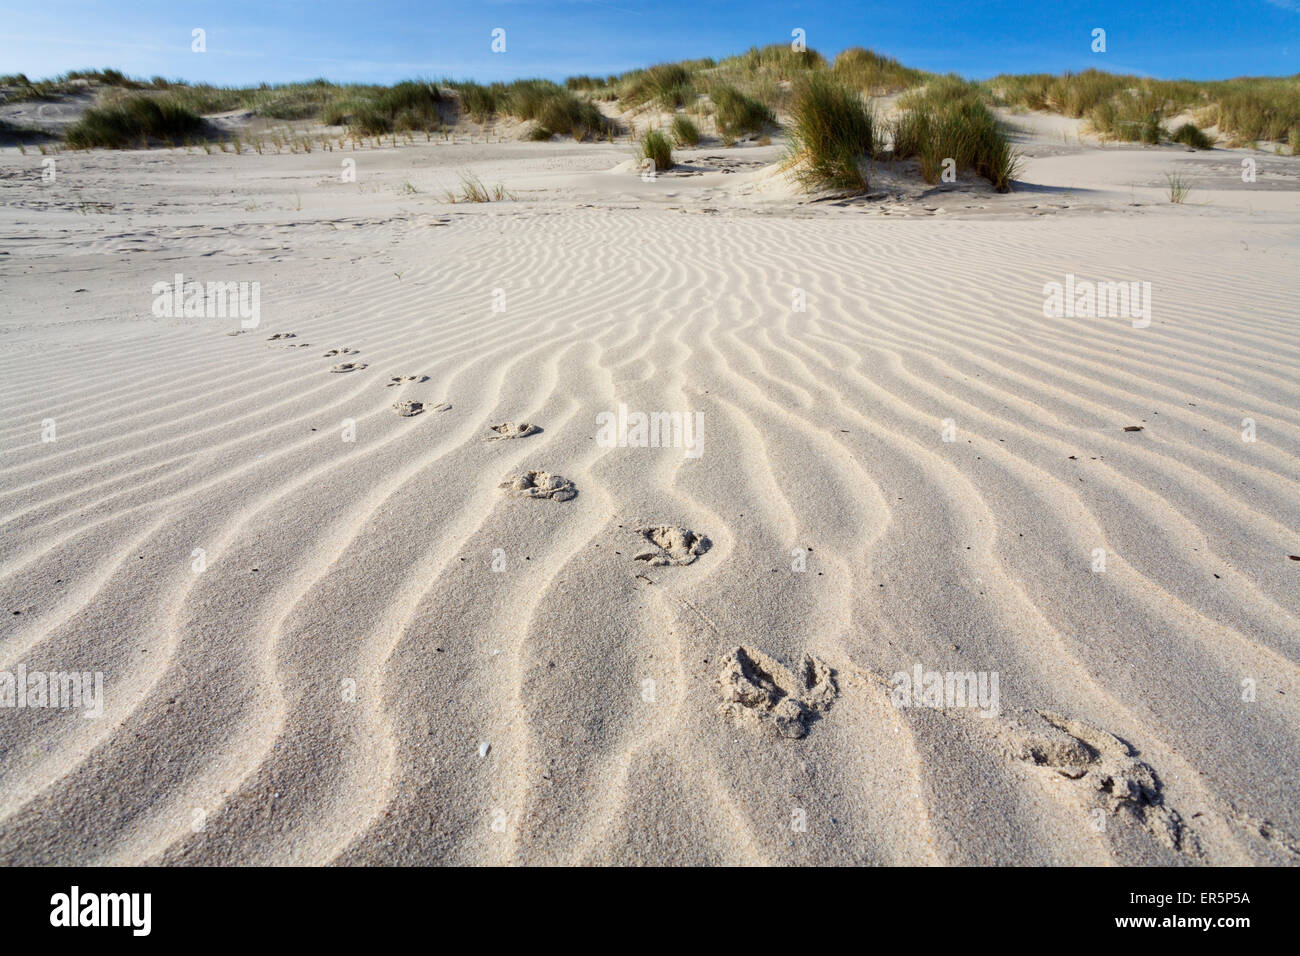 Bbird tracks in the sand, dunes, Juist Island, North Sea, East Frisian Islands, East Frisia, Lower Saxony, Germany, Stock Photo